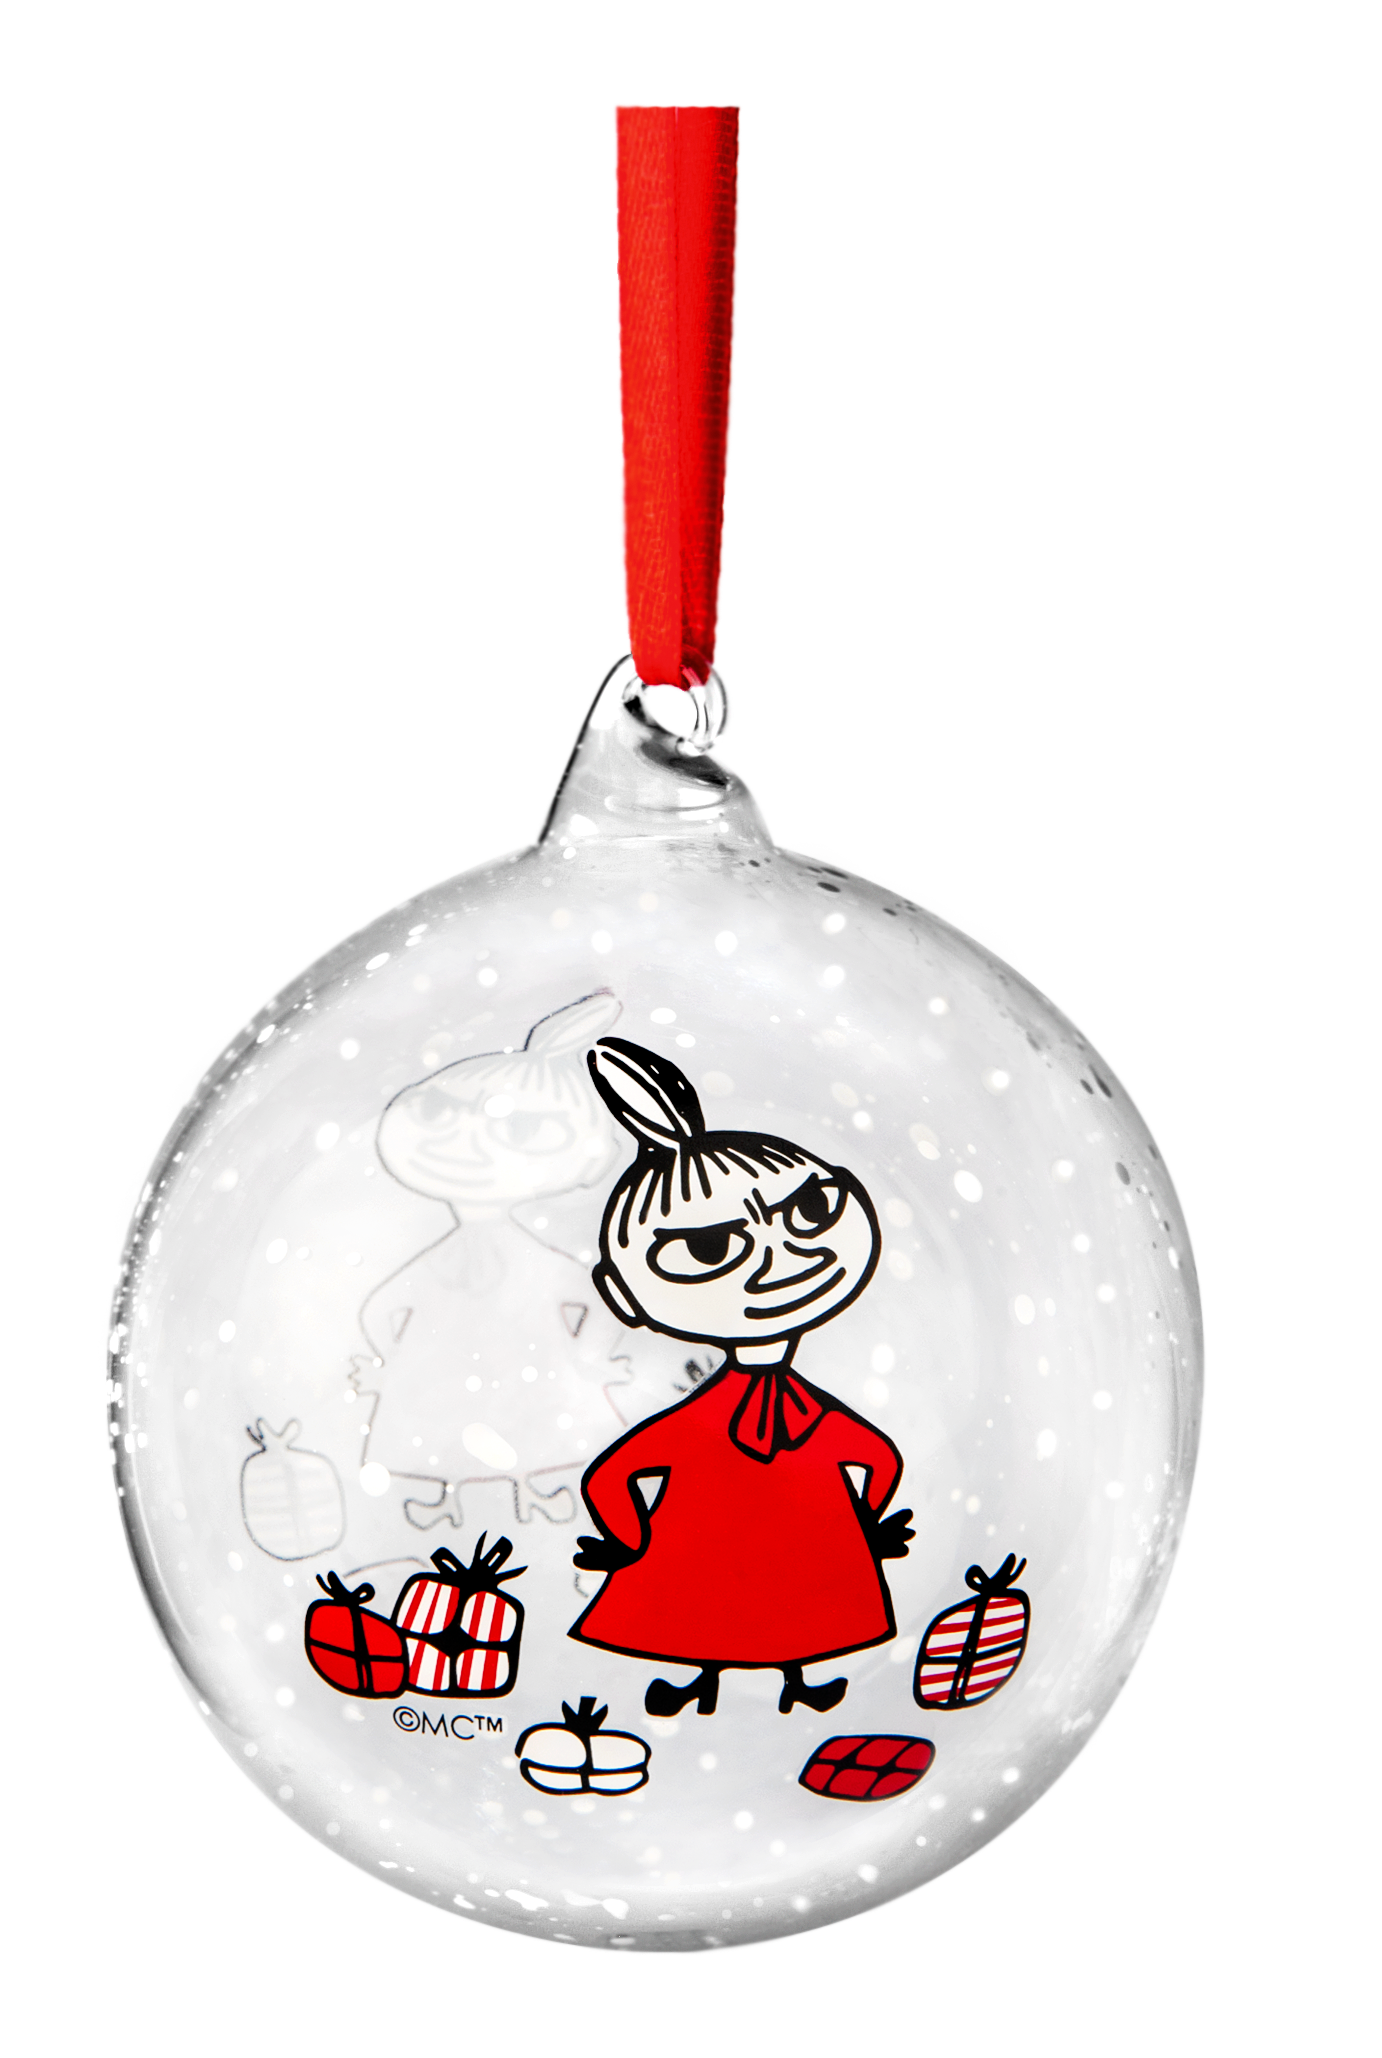 Muurla Moomin Winter Magic - Little My decoration ball 9 cm